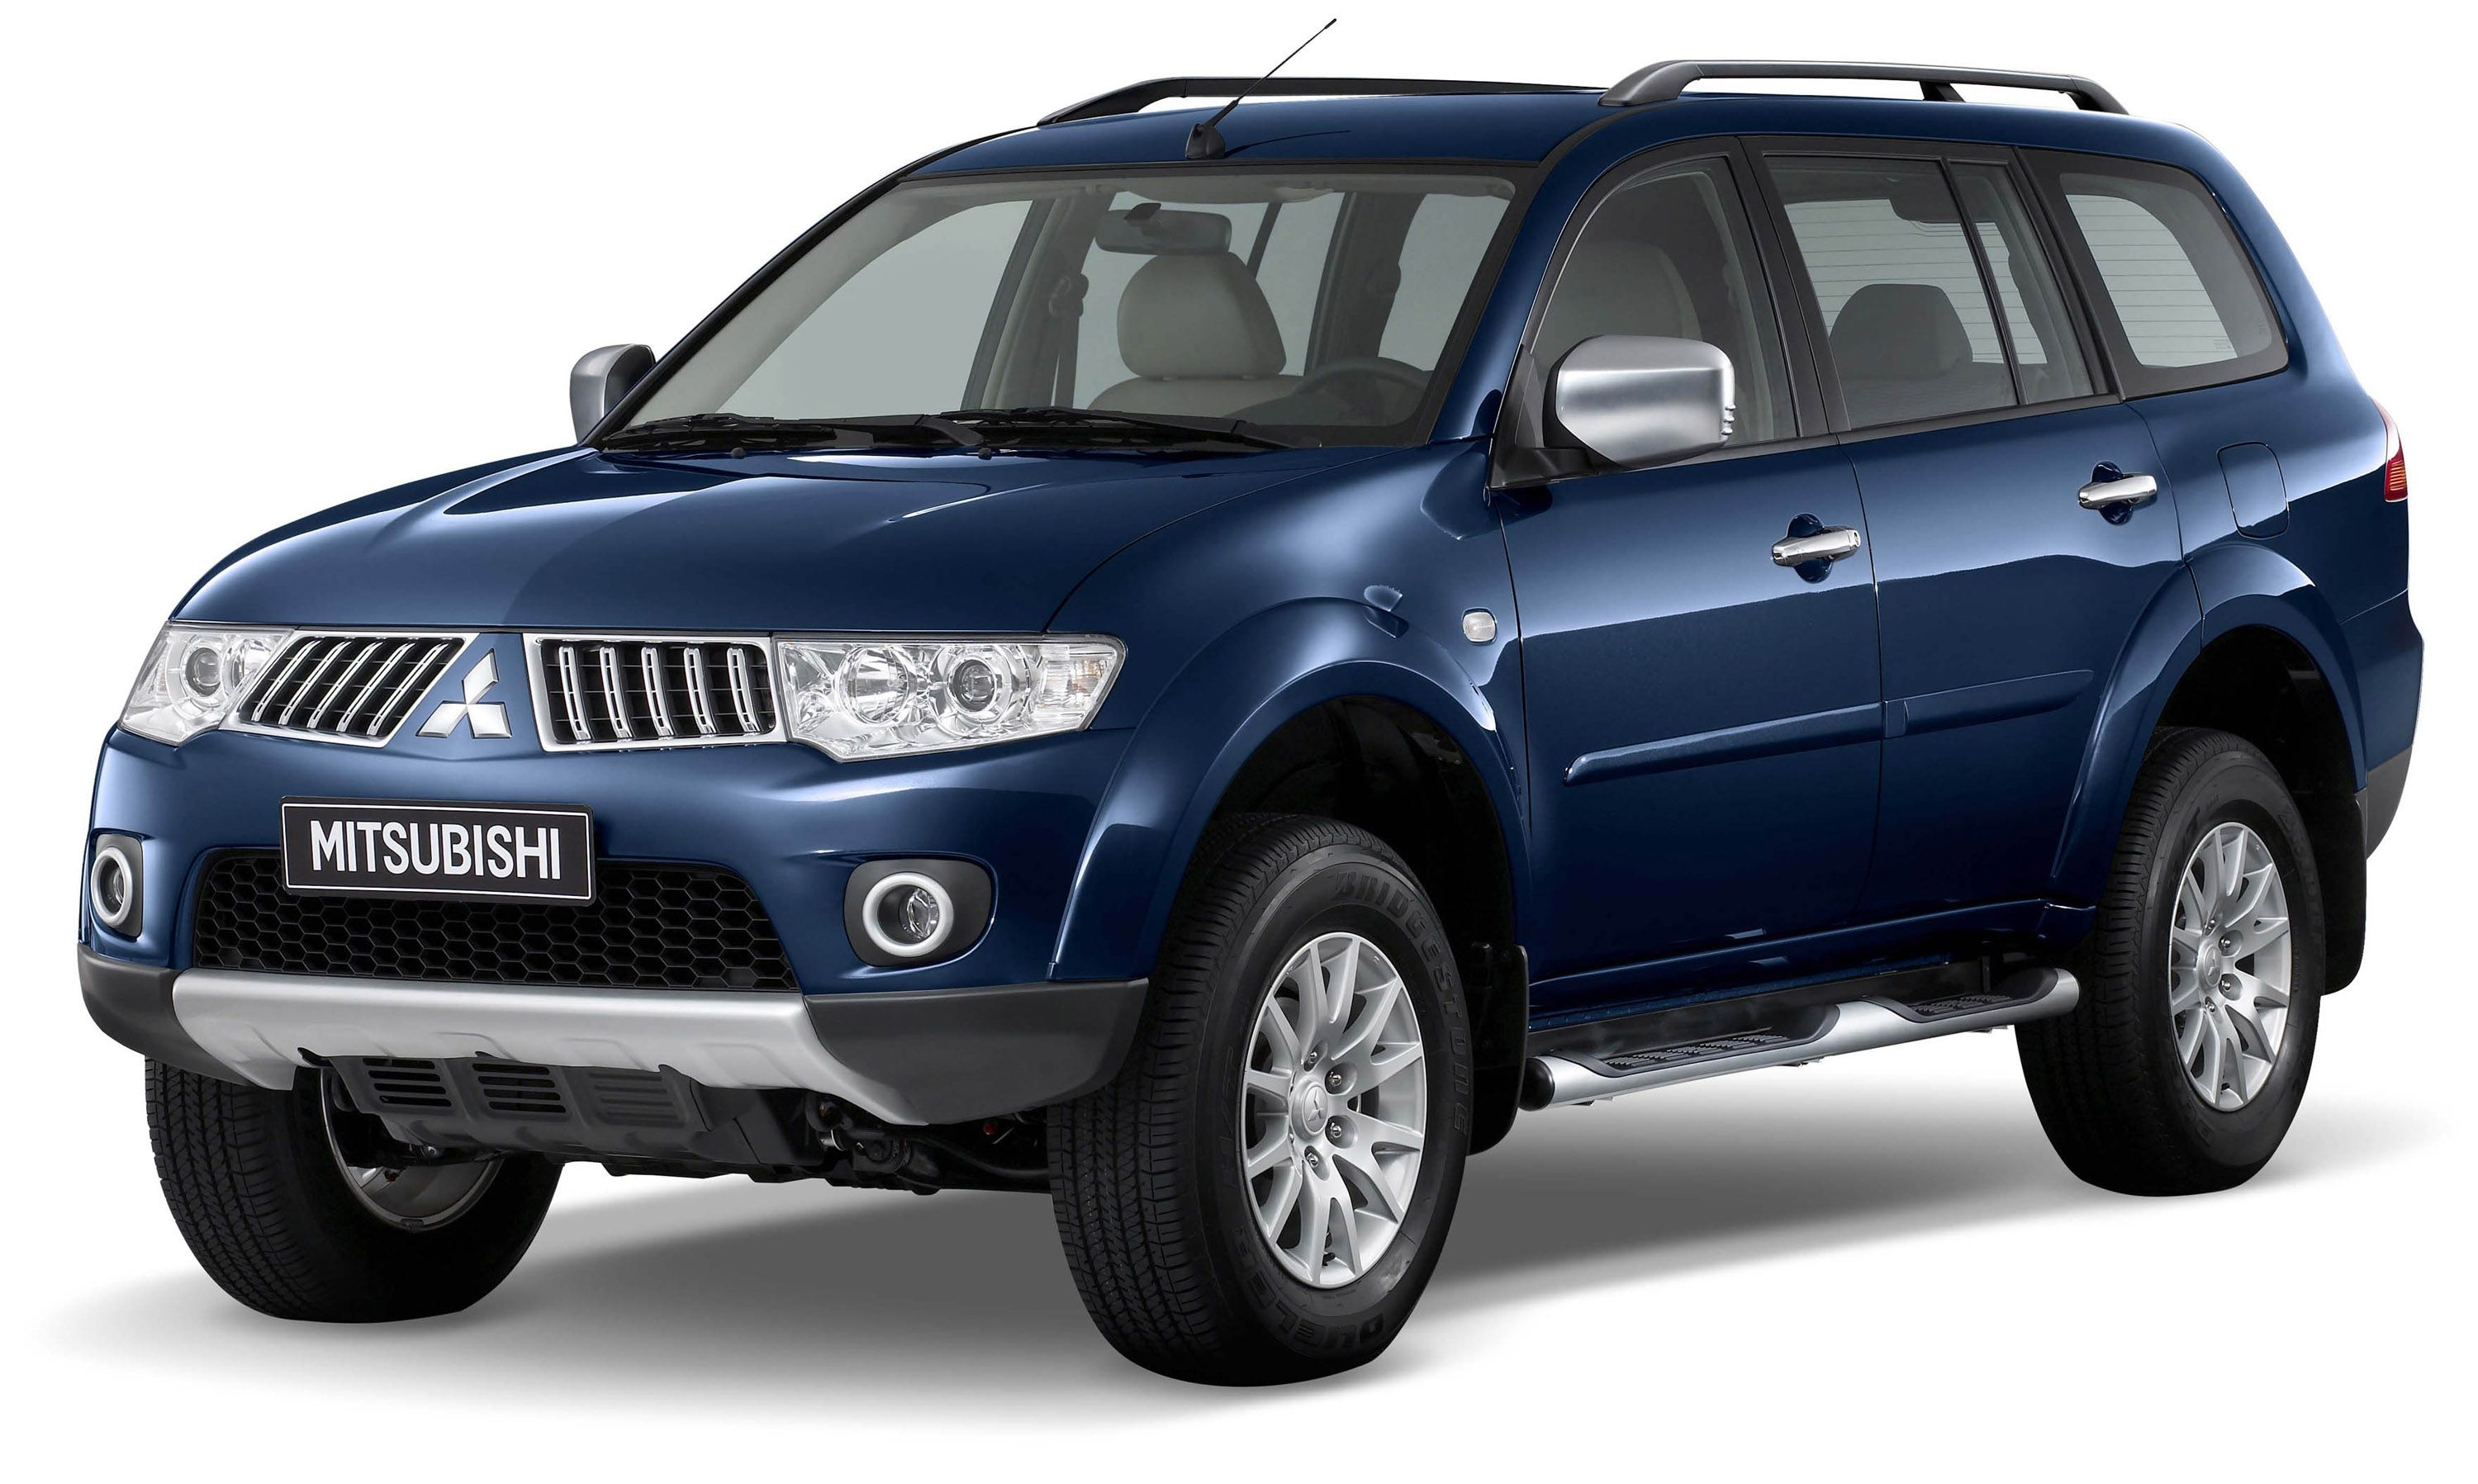 car wallpaper for blue mitsubishi pajero sport | car wallpaper